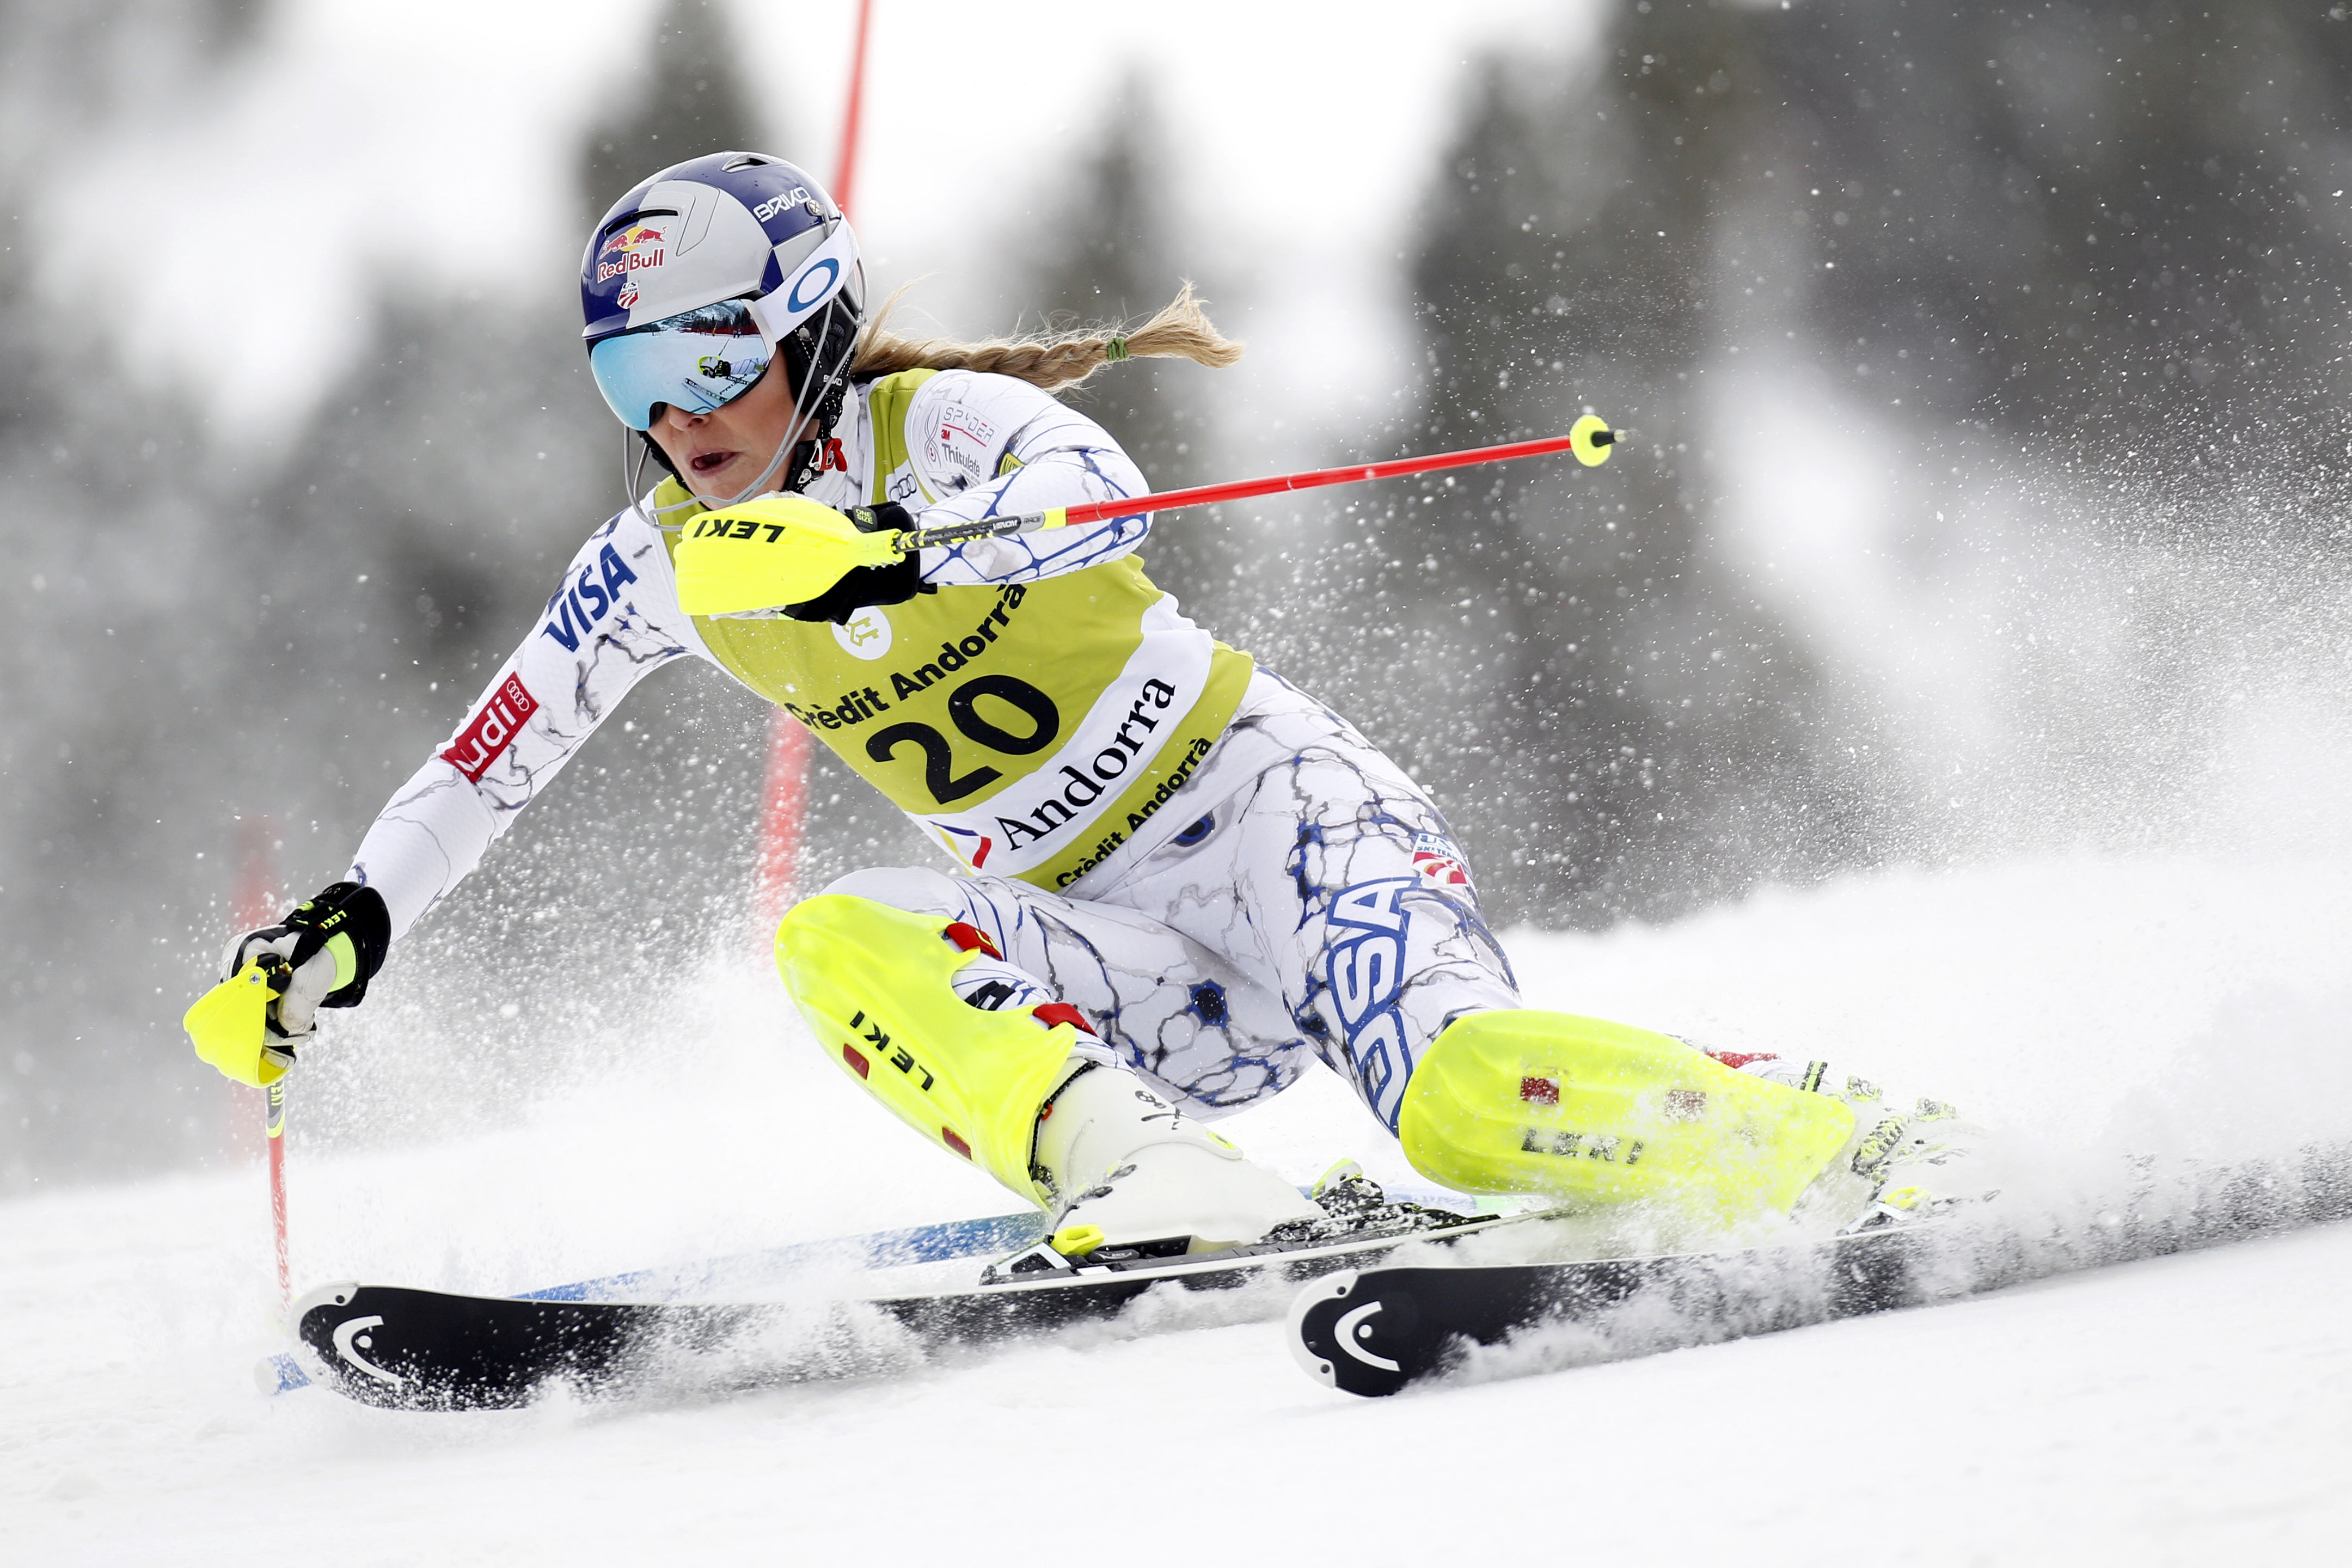 Lindsey Vonn of the USA competes during the Audi FIS Alpine Ski World Cup Women's Super Combined on Feb. 28, 2016 in Soldeu, Andorra. (credit: Alexis Boichard/Agence Zoom/Getty Images)